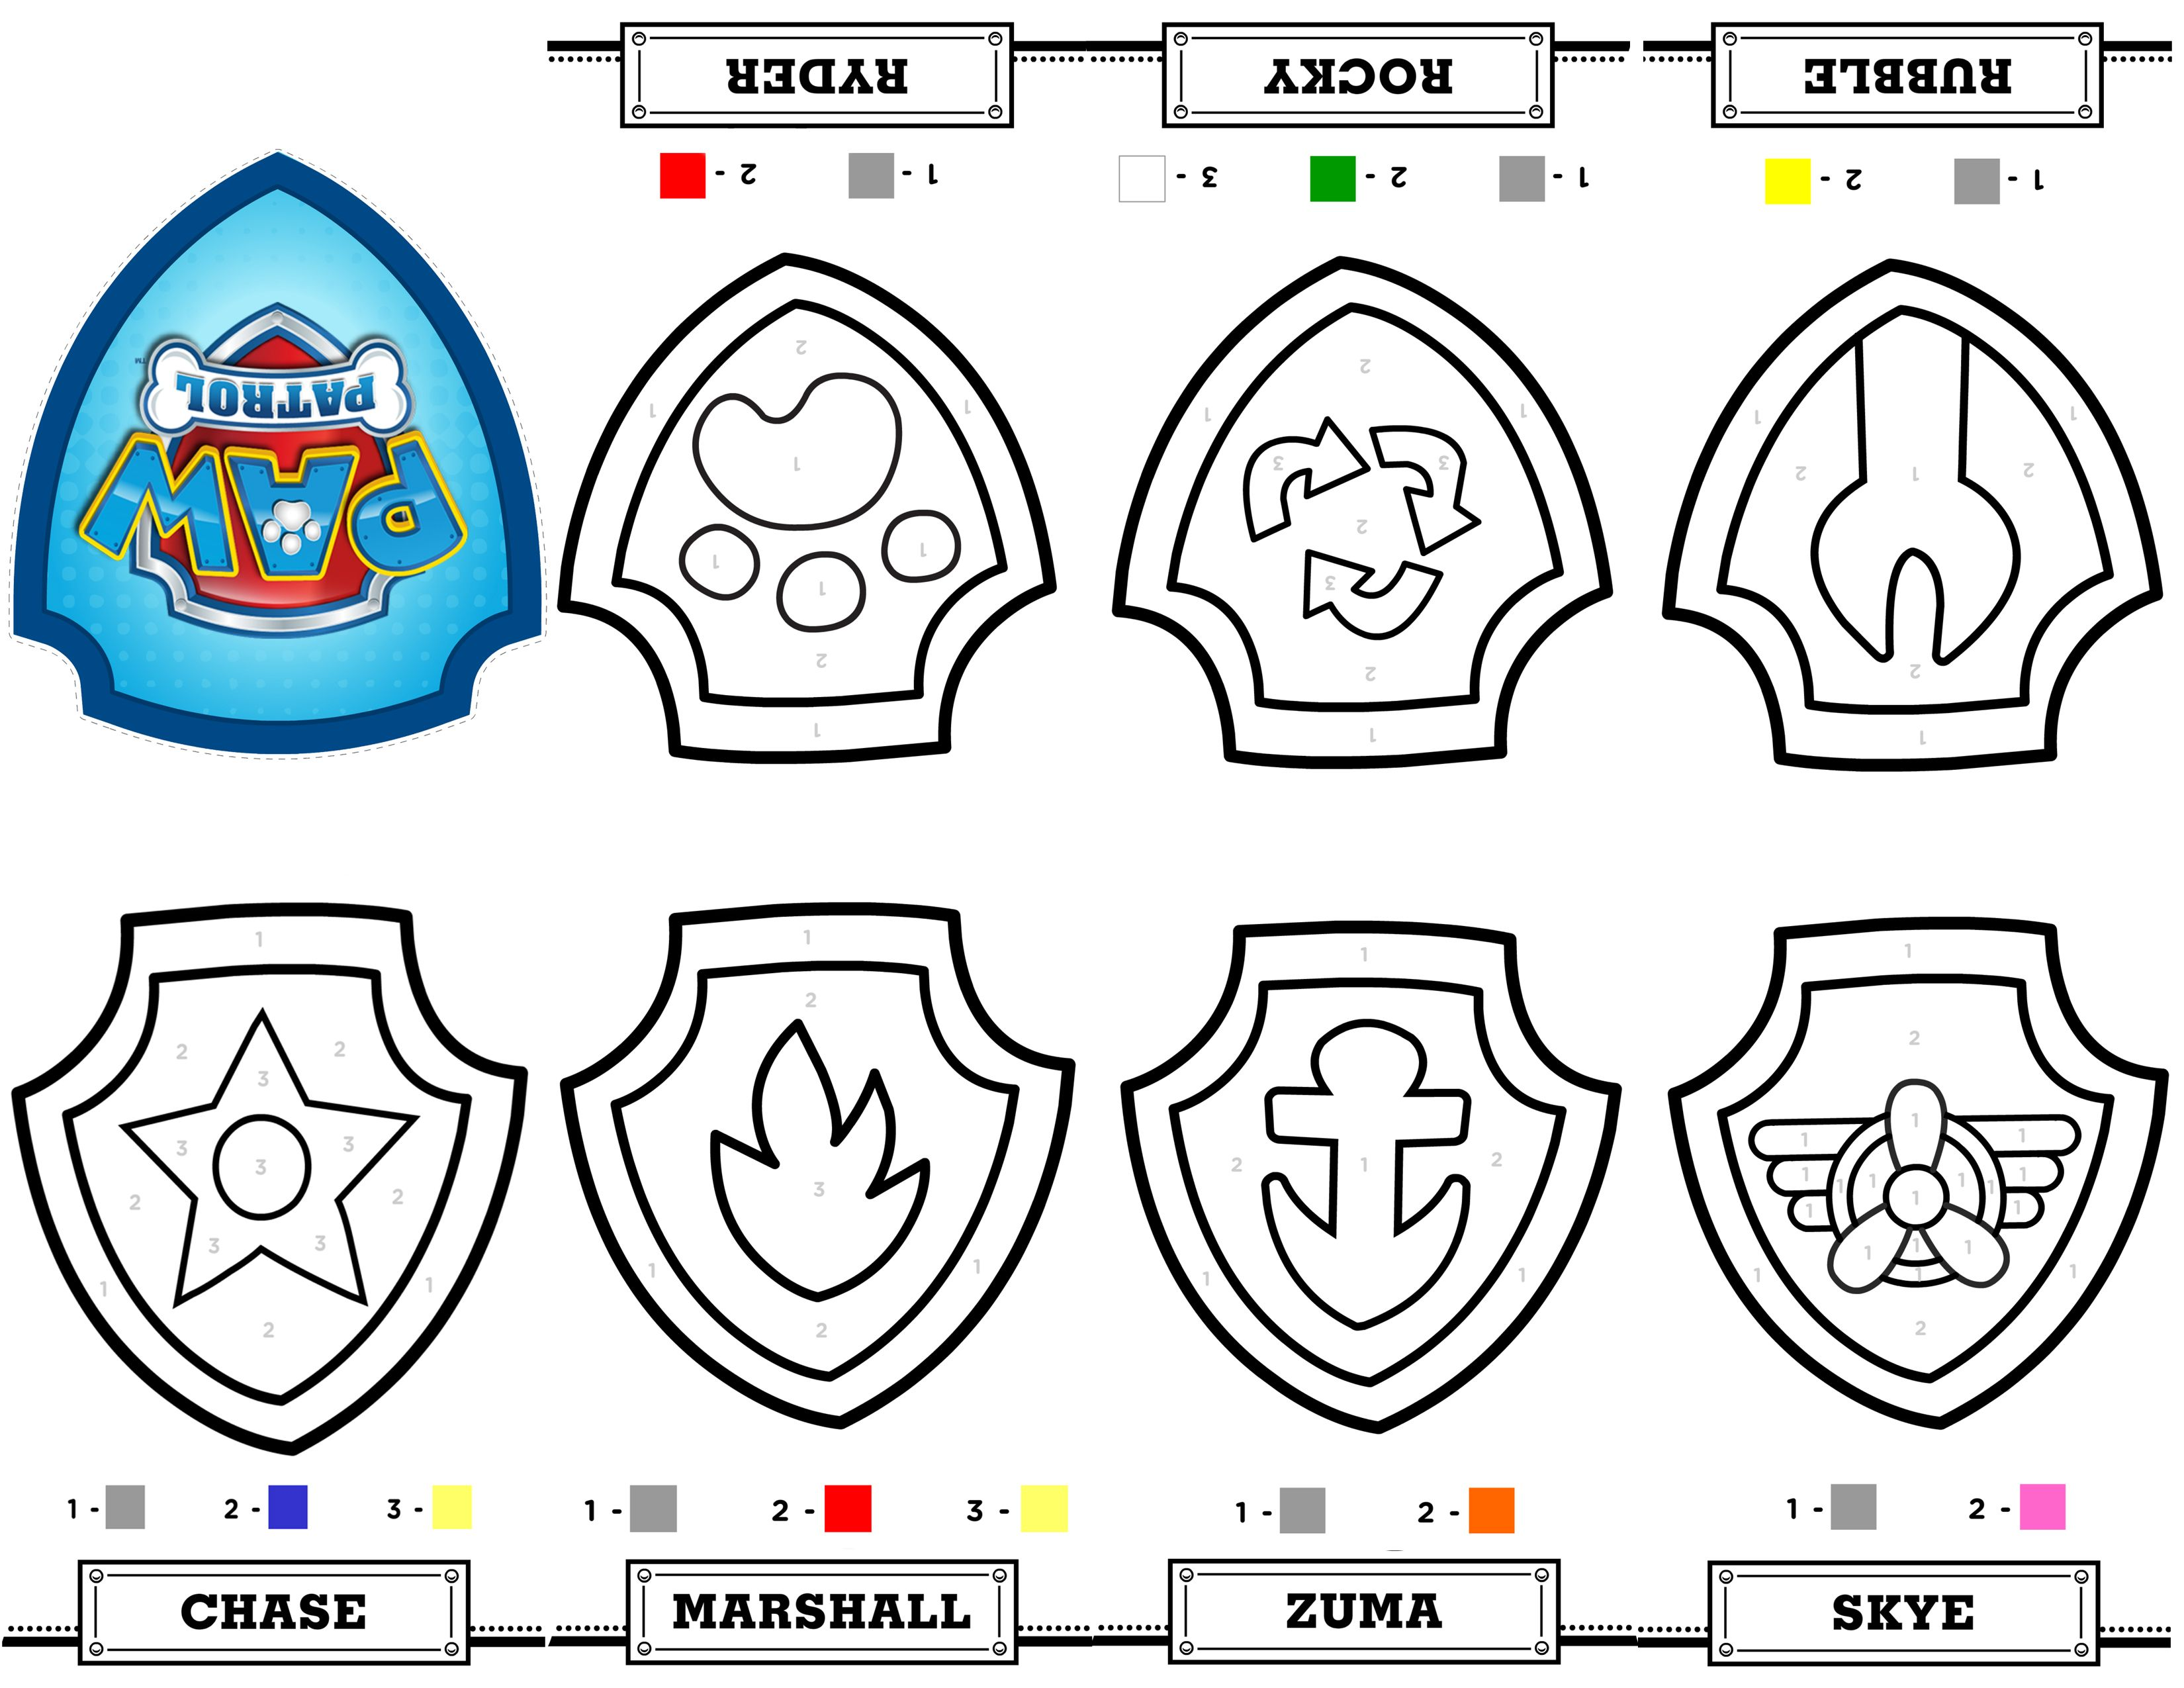 Free printable mini paw patrol coloring book from a single sheet of paper